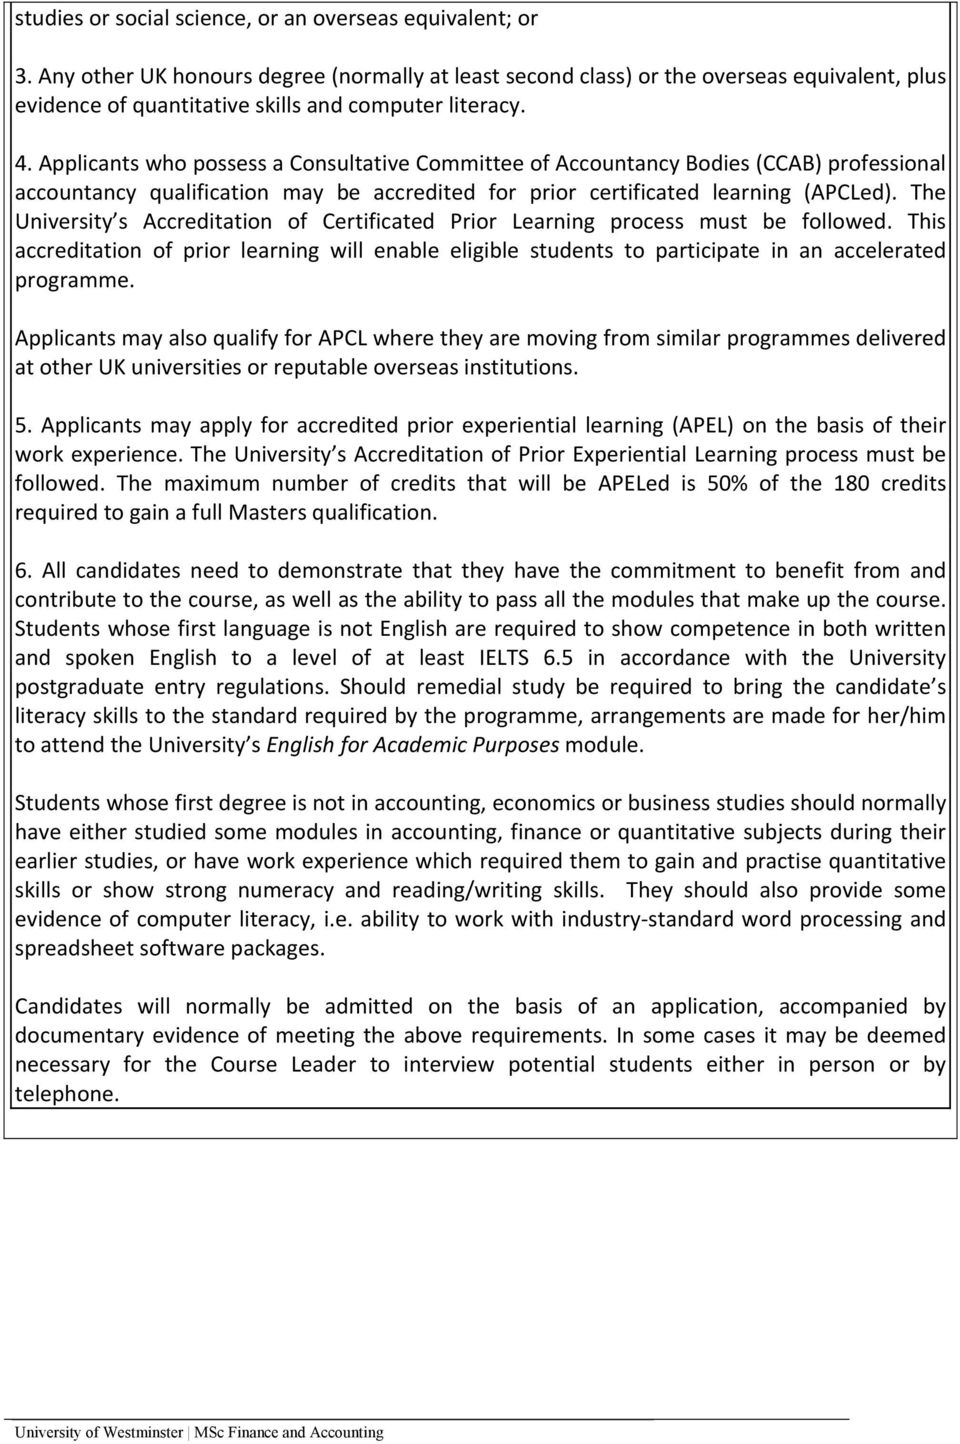 Applicants who possess a Consultative Committee of Accountancy Bodies (CCAB) professional accountancy qualification may be accredited for prior certificated learning (APCLed).